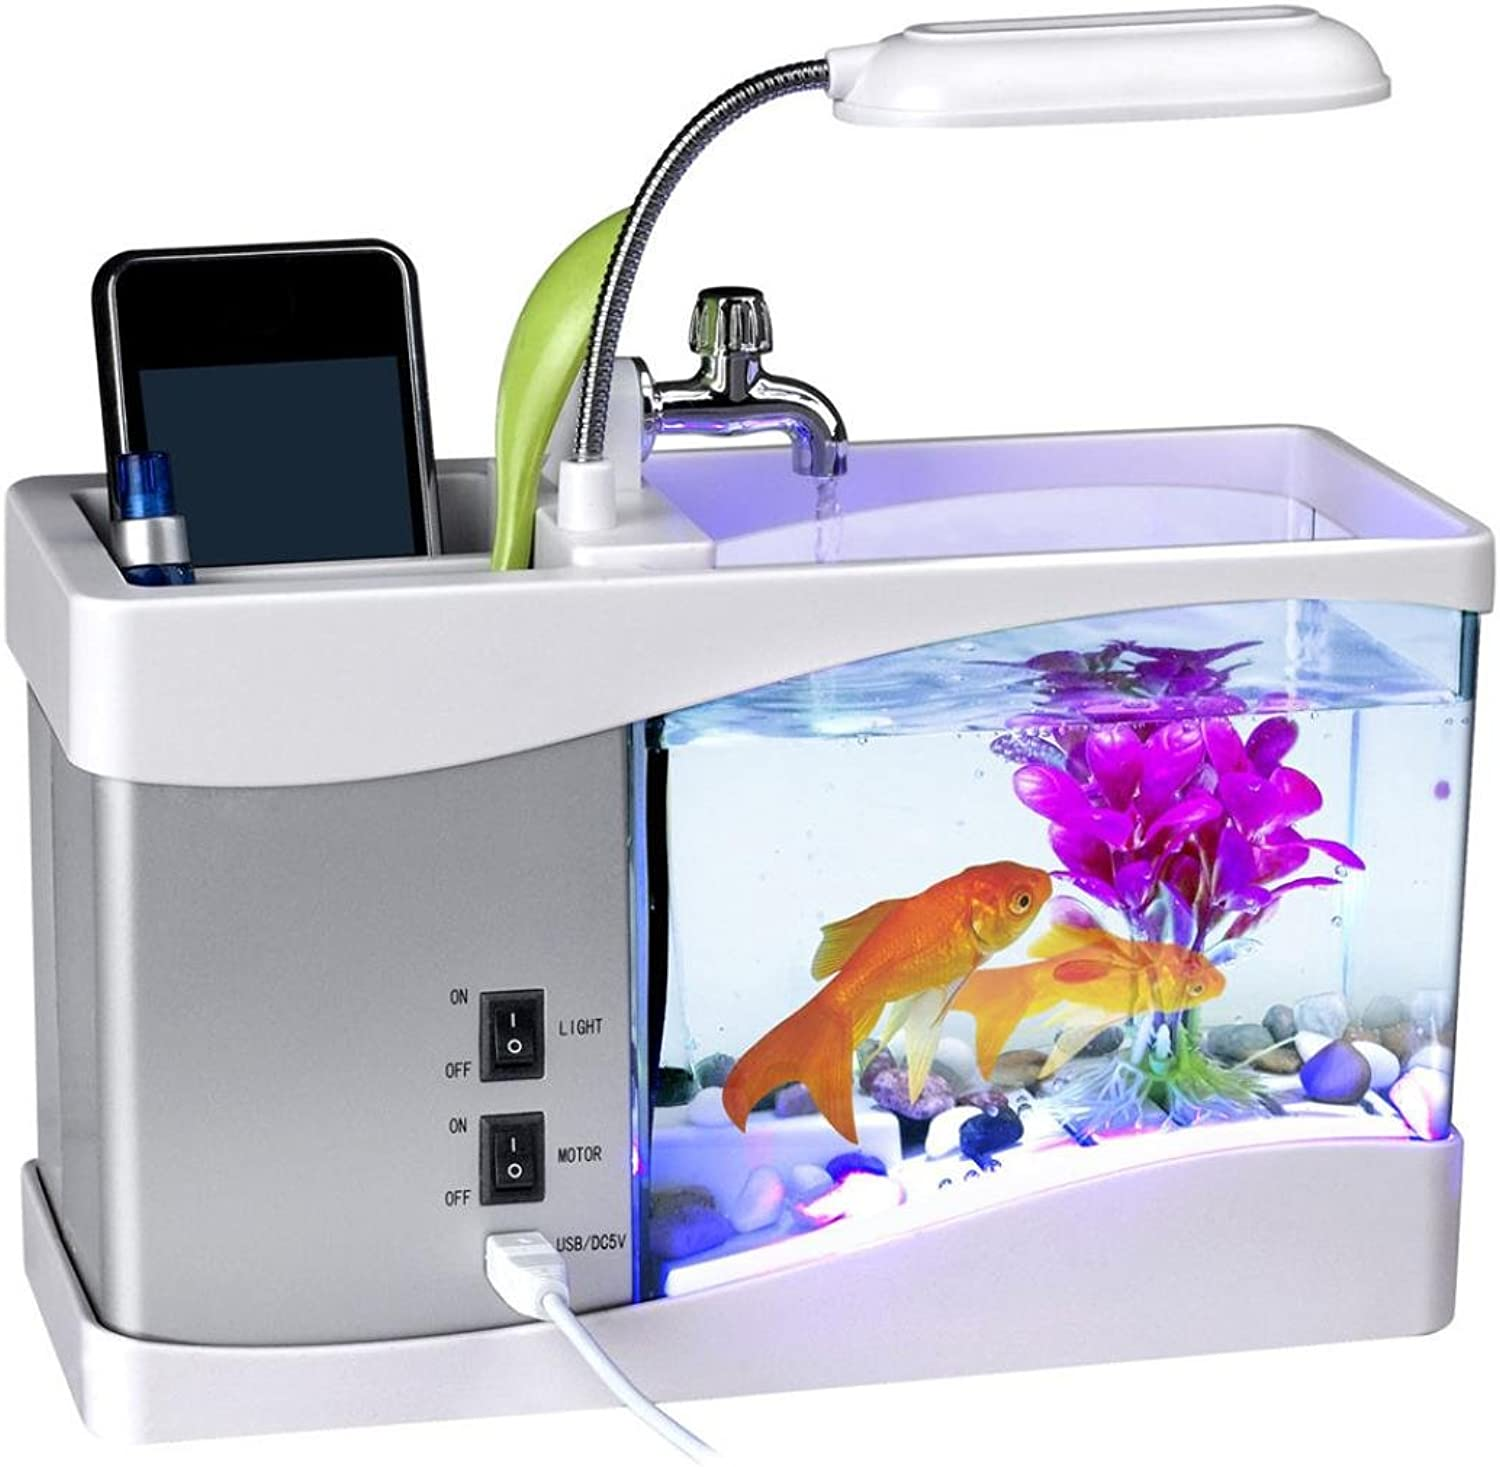 Kecar USB Desktop Aquarium Fish Tank  Gradient Light Dream Mini Aquarium  LCD Desktop Lamp Light Clock Fish Tank Aquarium